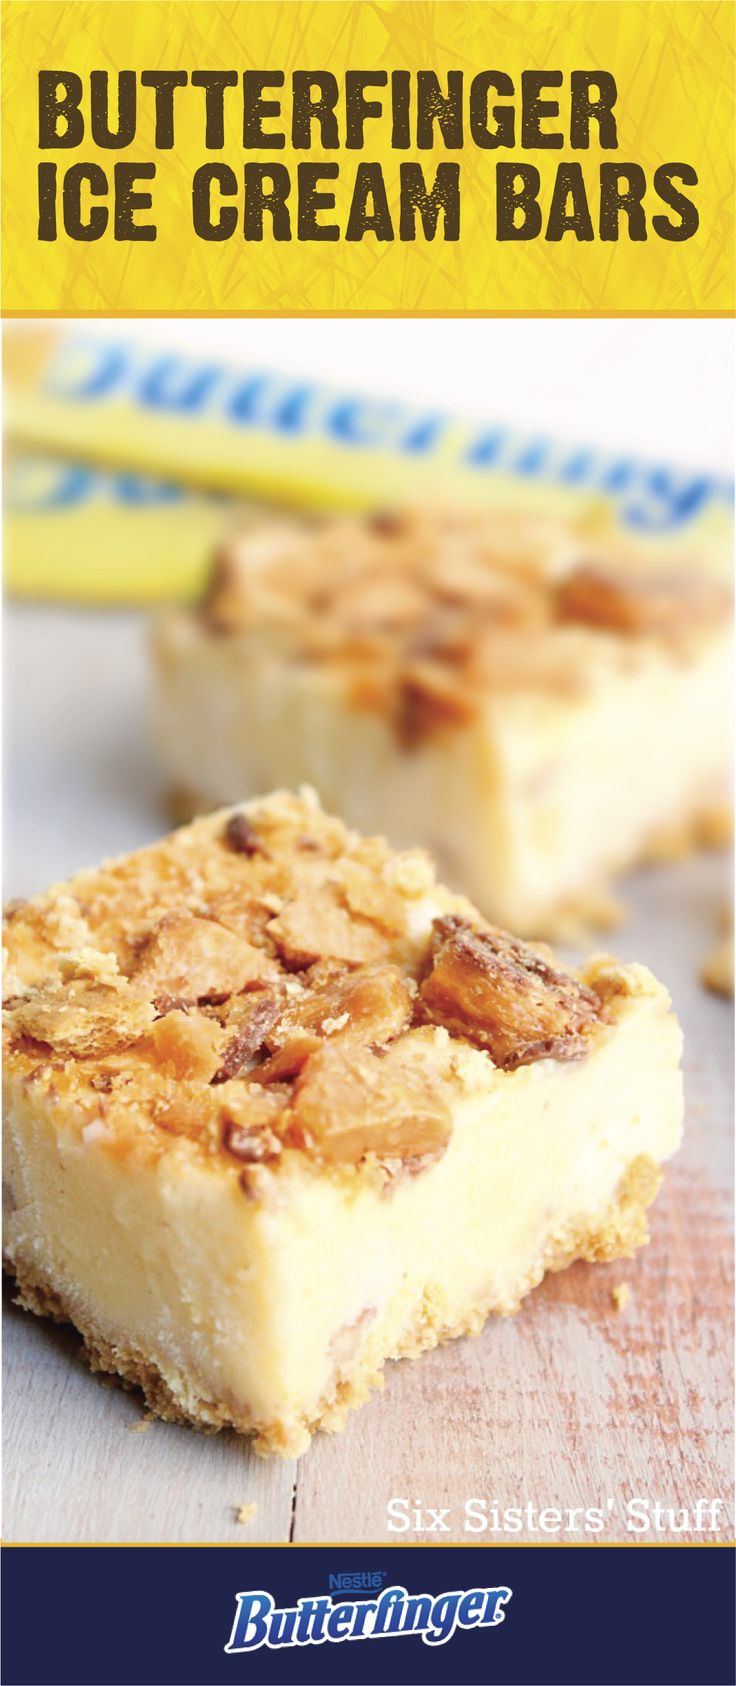 Cool off from the summer heat with a Butterfinger Ice Cream Bar. This sweet treat is a great recipe to serve at your next pool party. With every bite you take, you'll get the crispety, crunchety, peanut-buttery taste of a BUTTERFINGER® candy bar. Click here to learn more!